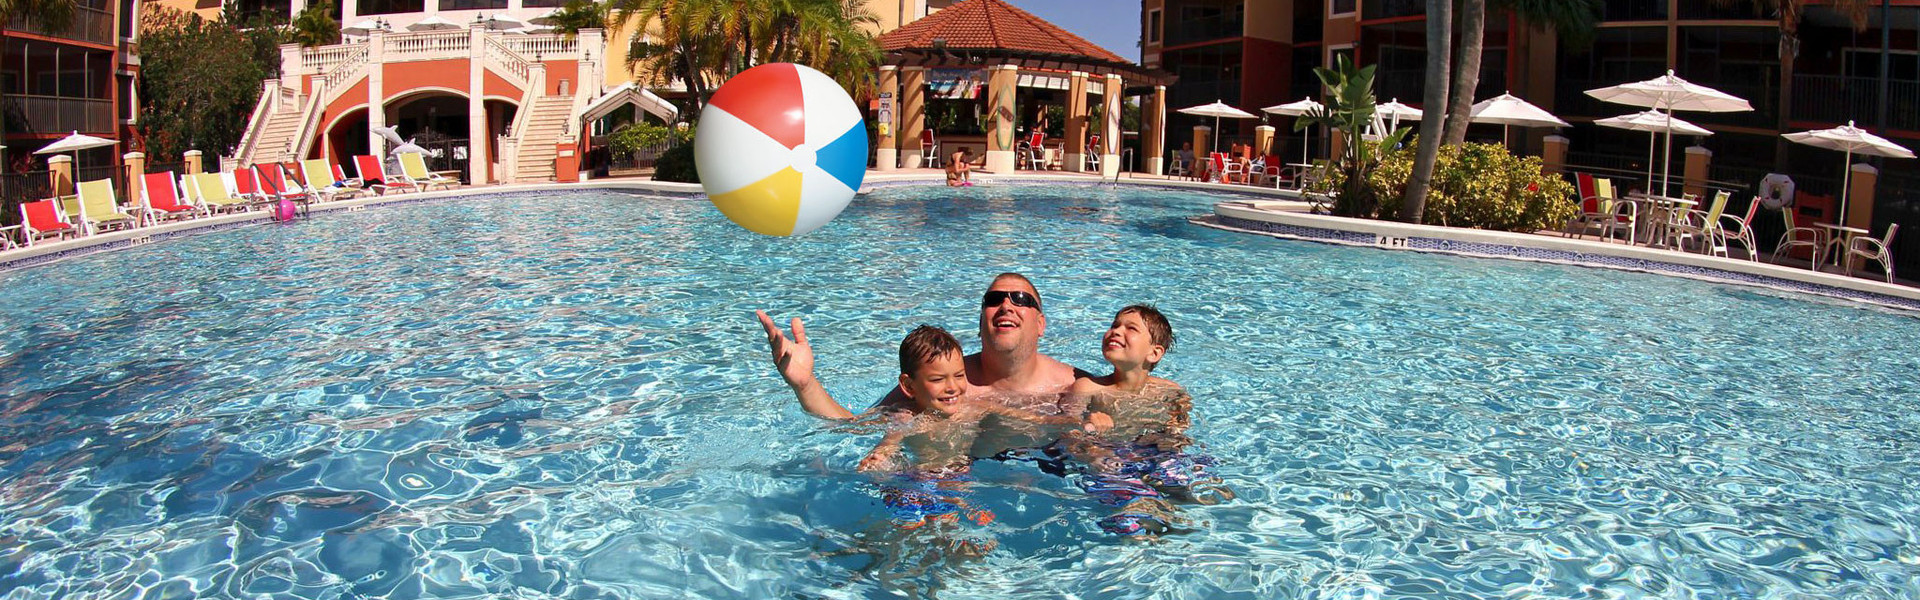 Heated Outdoor Pools and Spa Tubs Enjoy the sun and fun you expect on your Orlando vacation getaway with multiple outdoor heated pools, spa tubs, and poolside bars offering made-to-order cocktails and light food options.